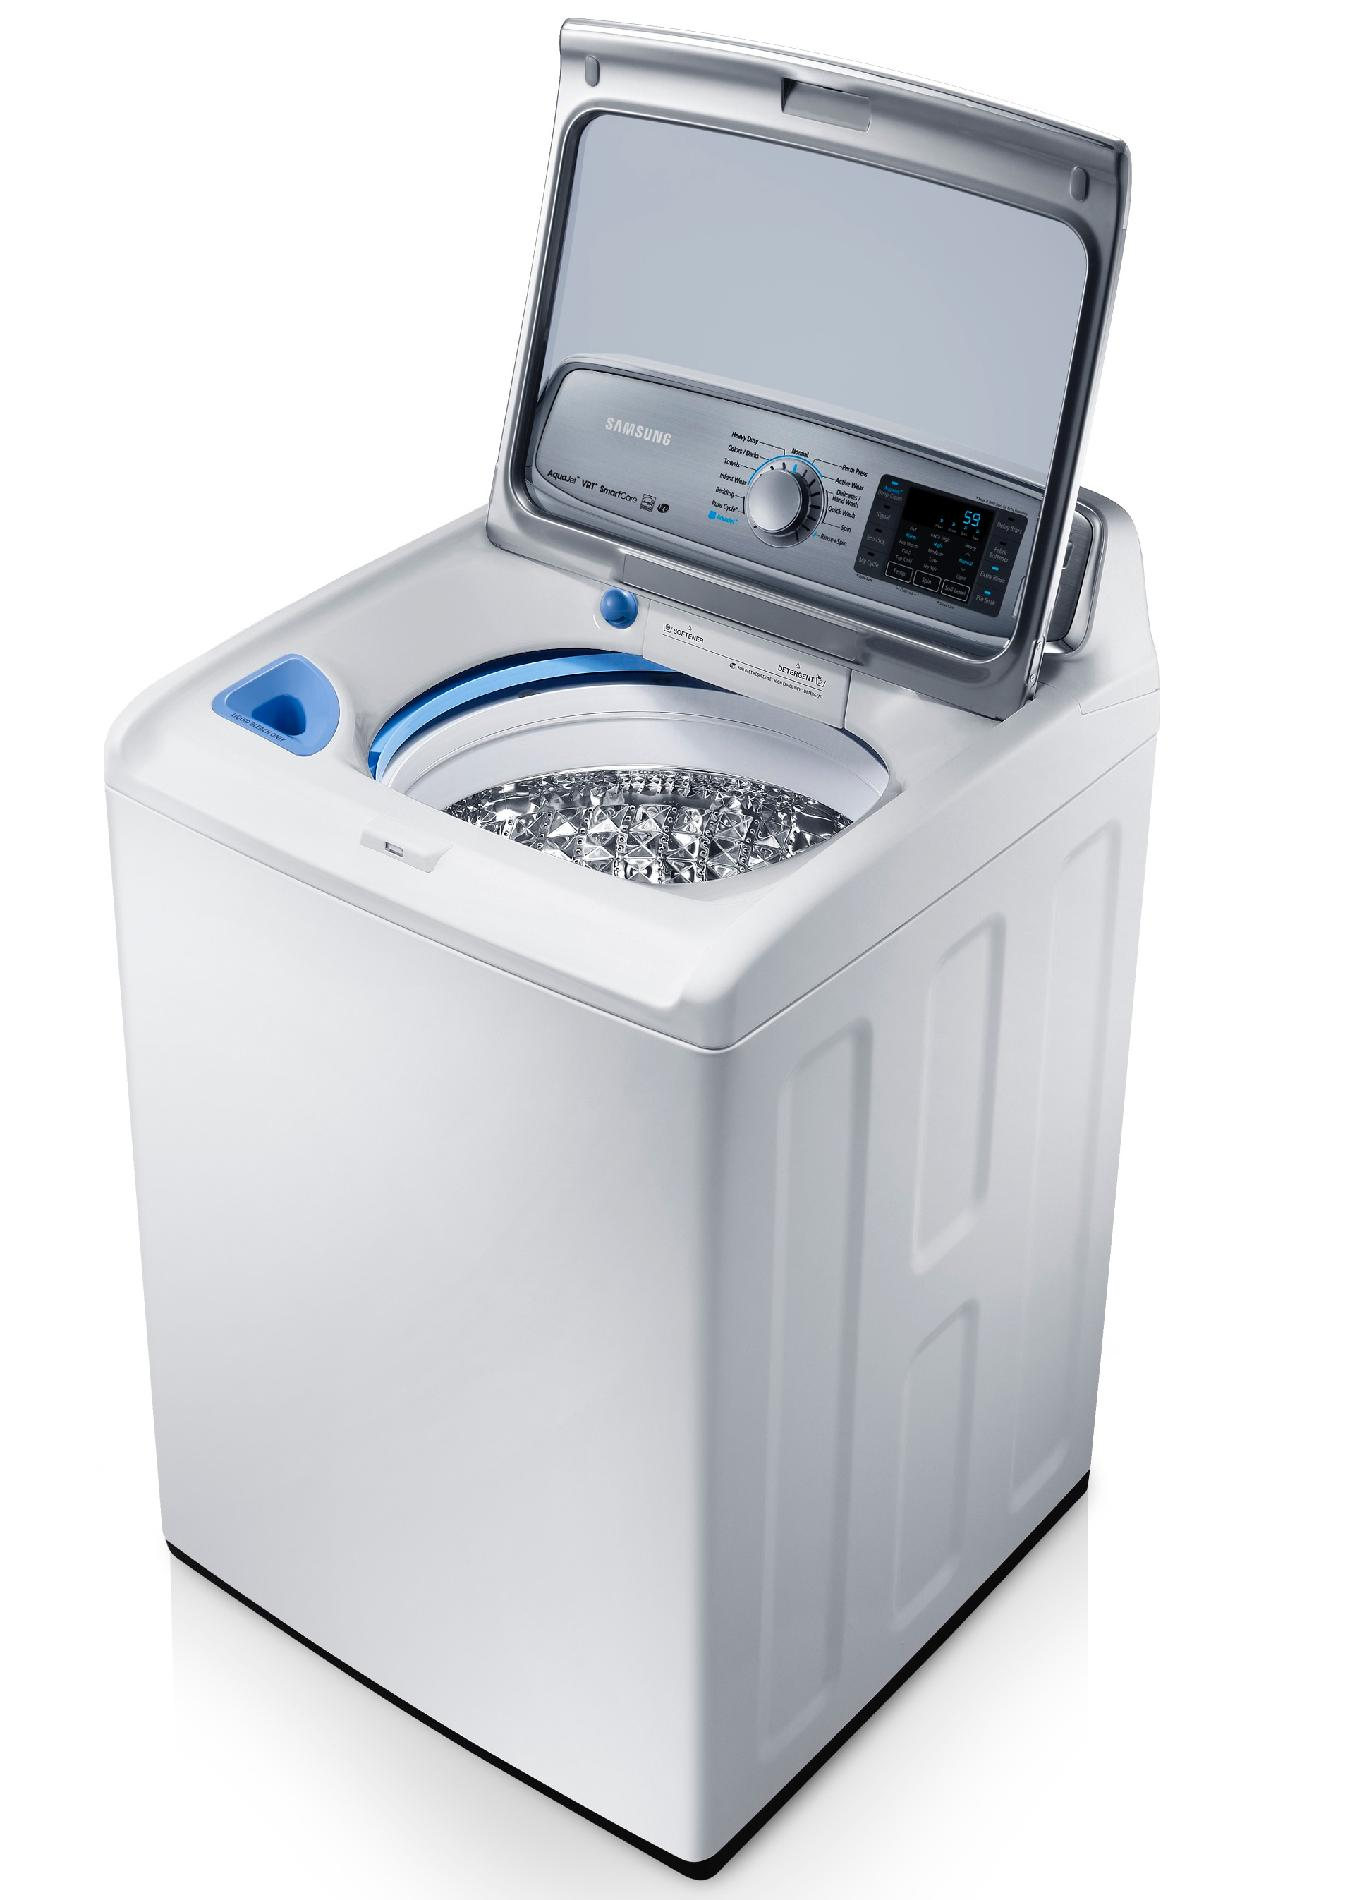 Samsung 5.0 cu. ft. Top-Load Washer - Neat White